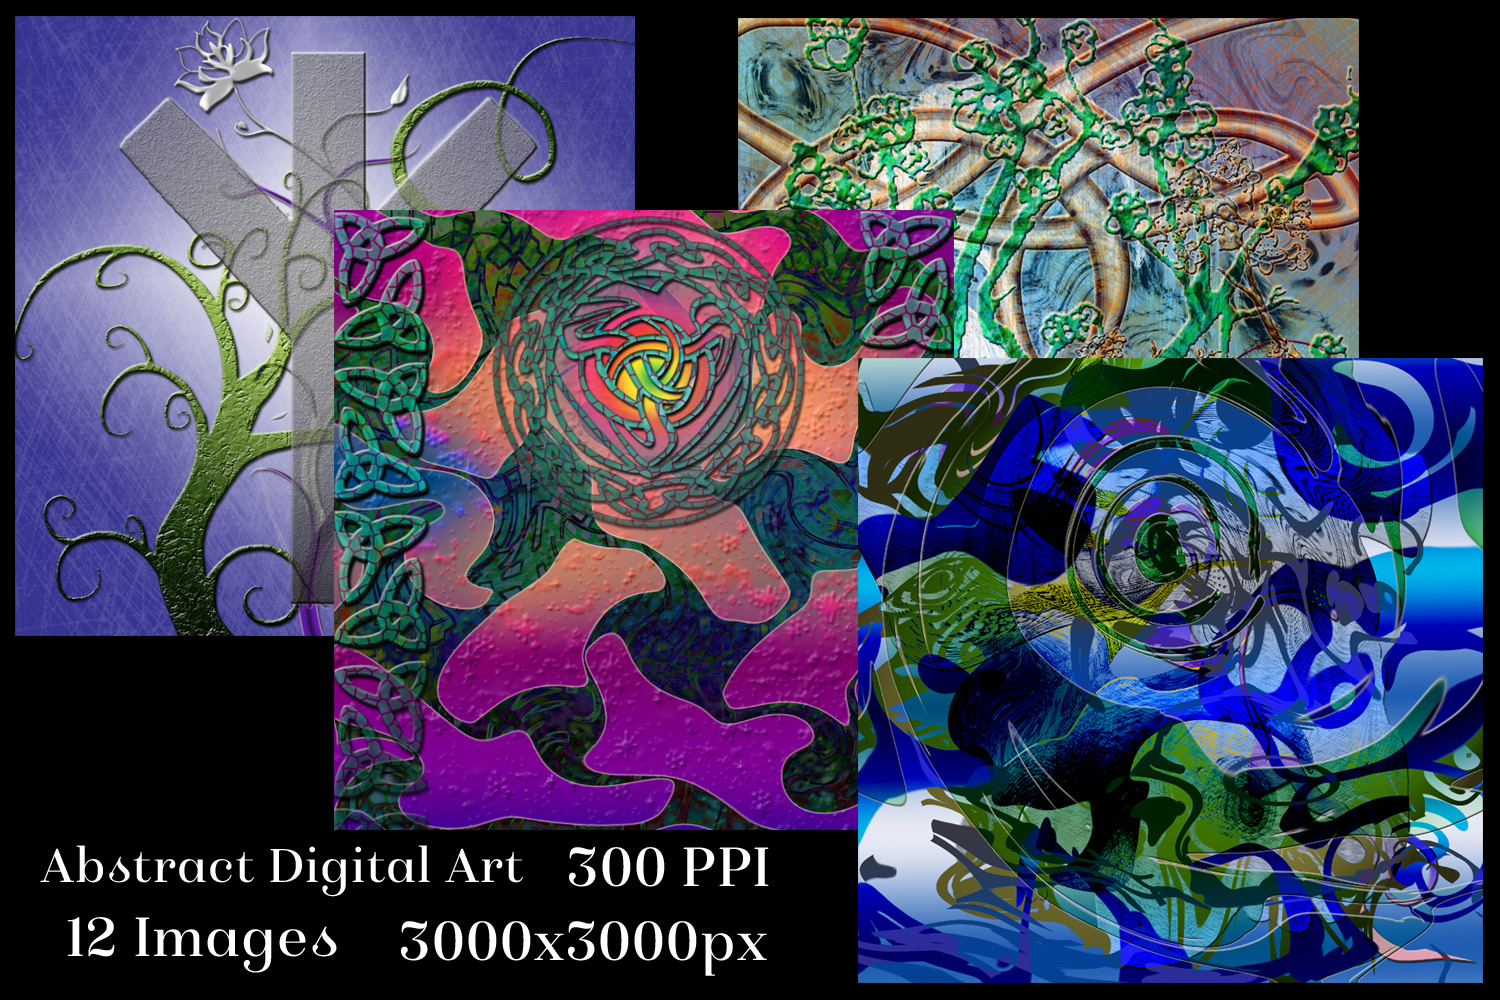 Abstract Digital Art Backgrounds - 12 Image Set example image 2